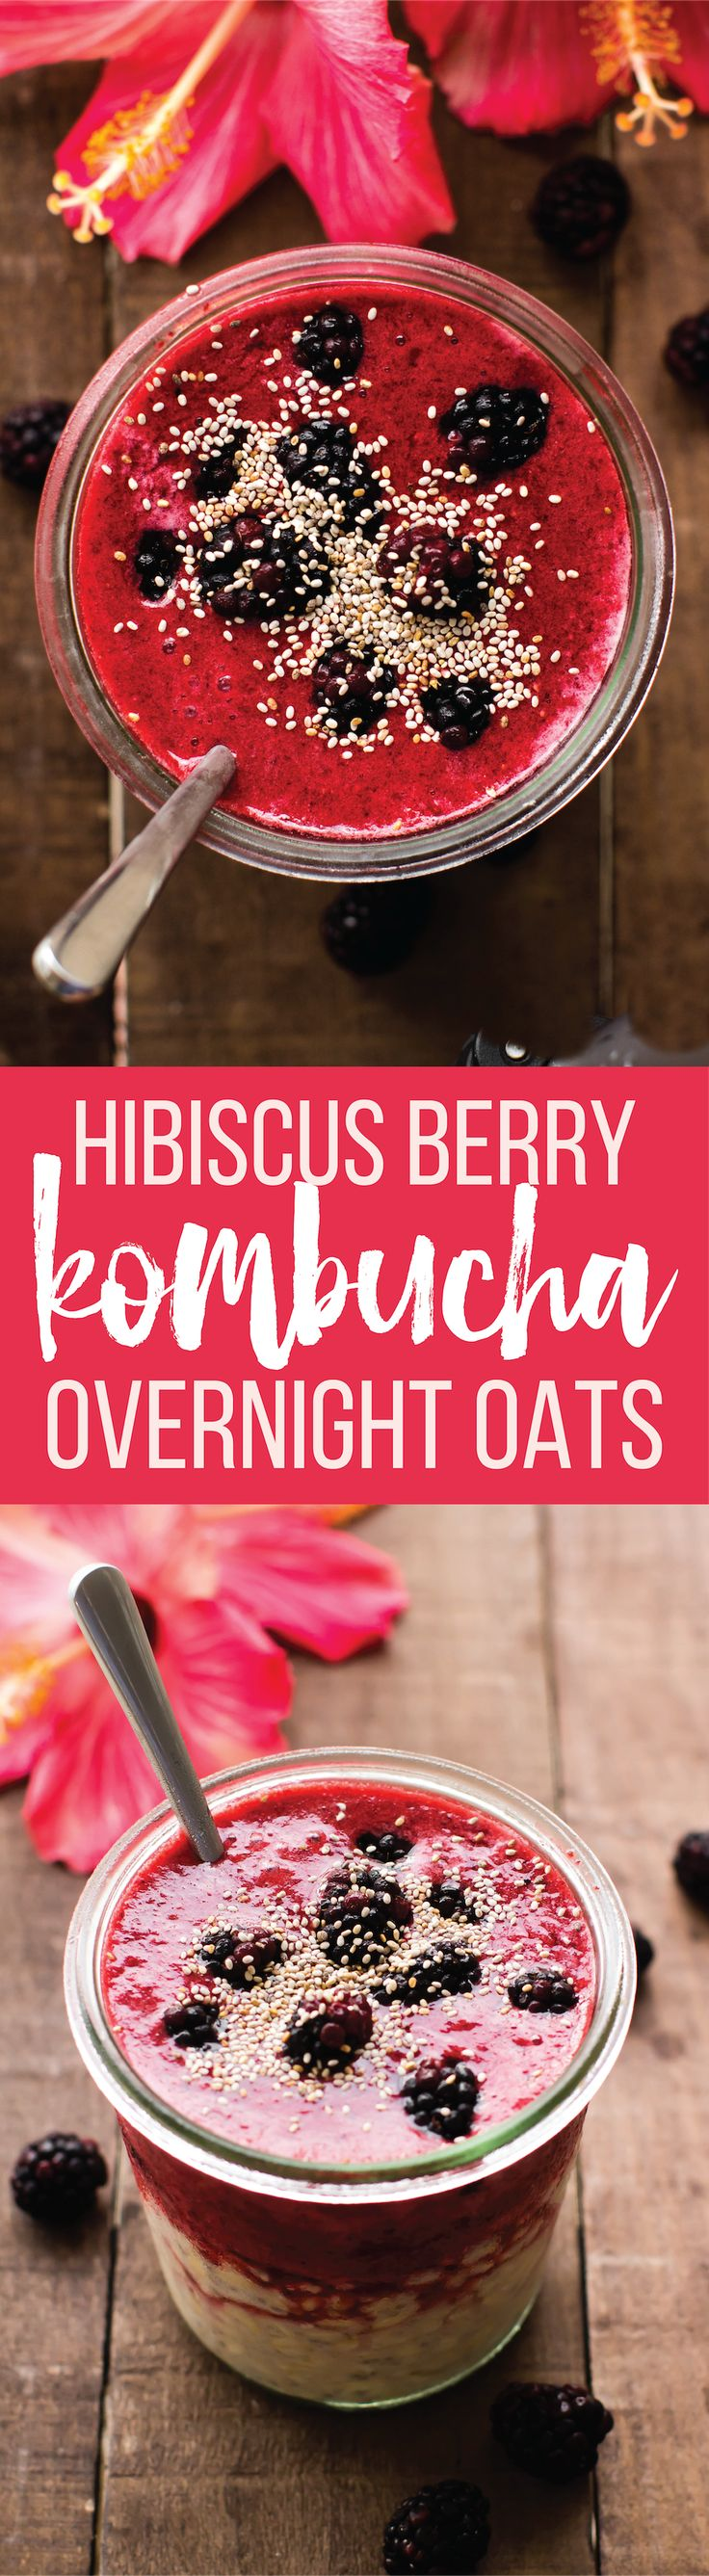 Berry Kombucha Overnight Oats. A healthy breakfast that delivers fruit, fiber, and probiotics all in one jar! via @Natalie | Feasting on Fruit